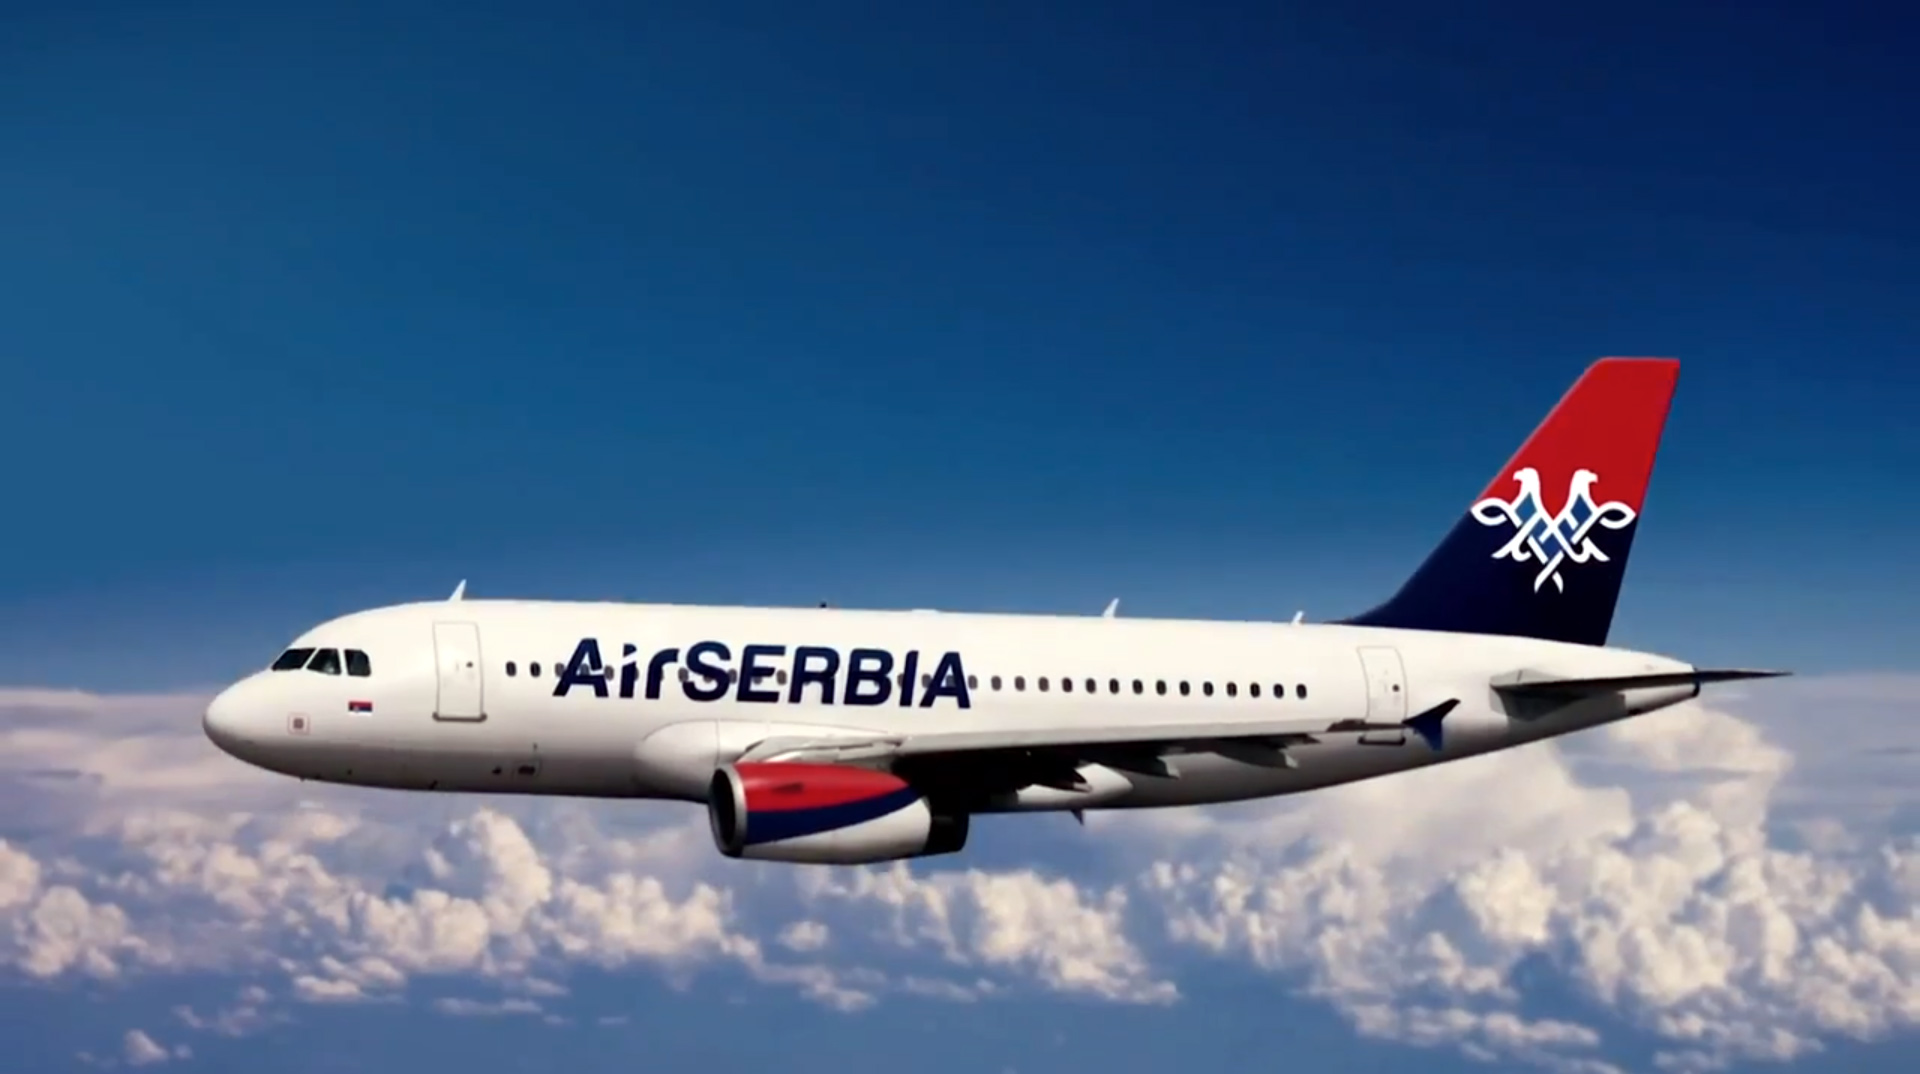 Serbia opened passenger airline service